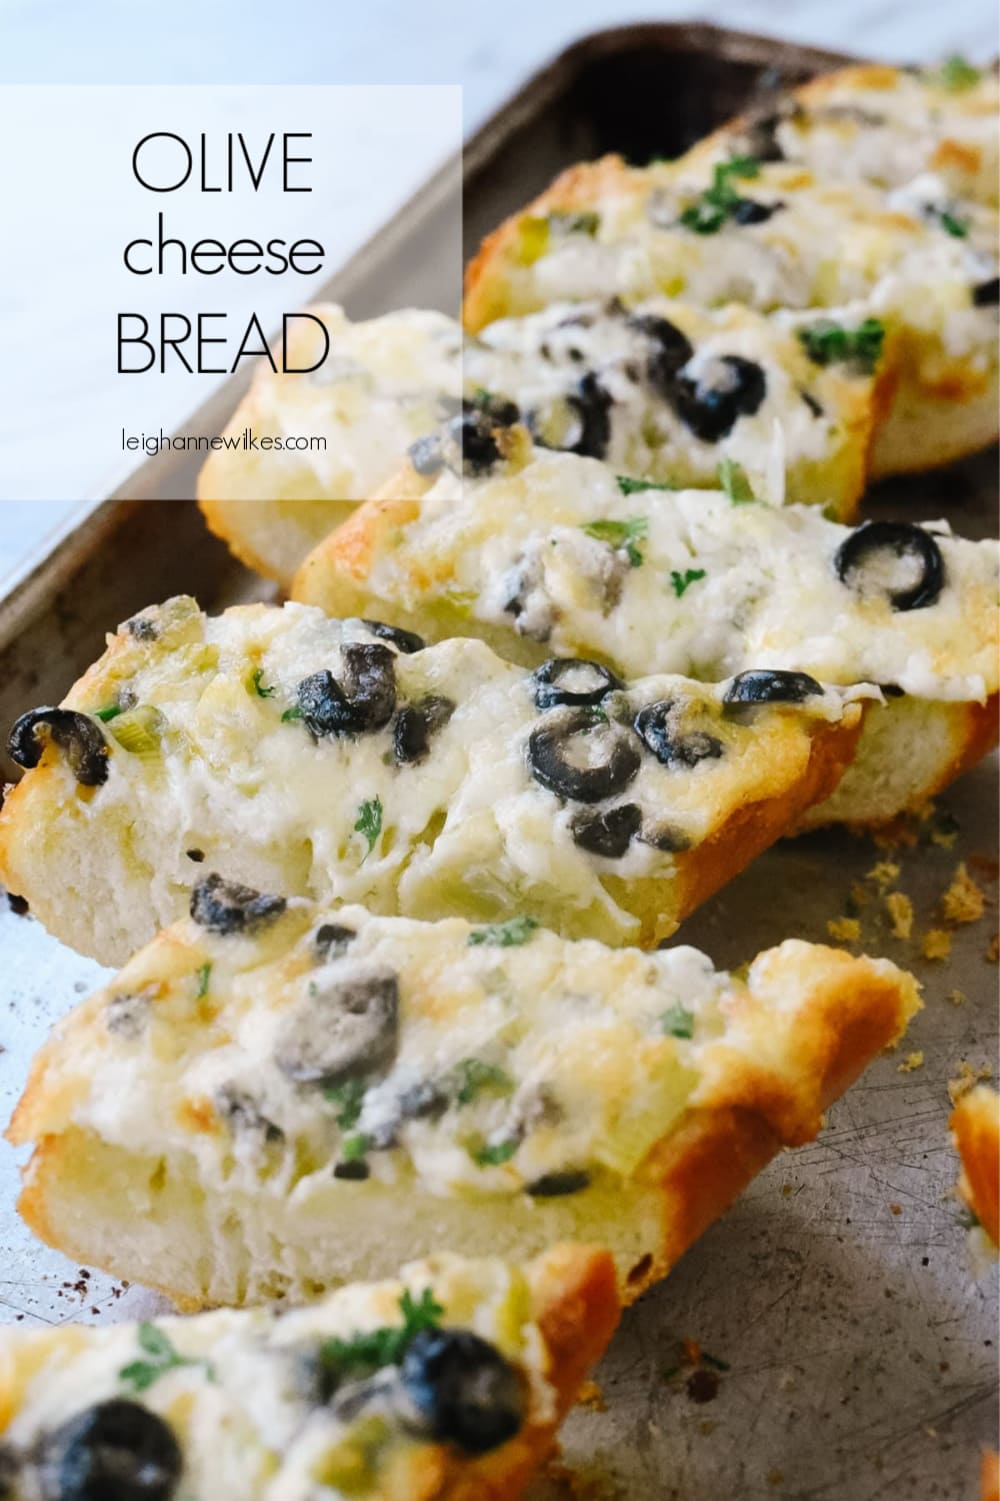 slices of olive cheese bread